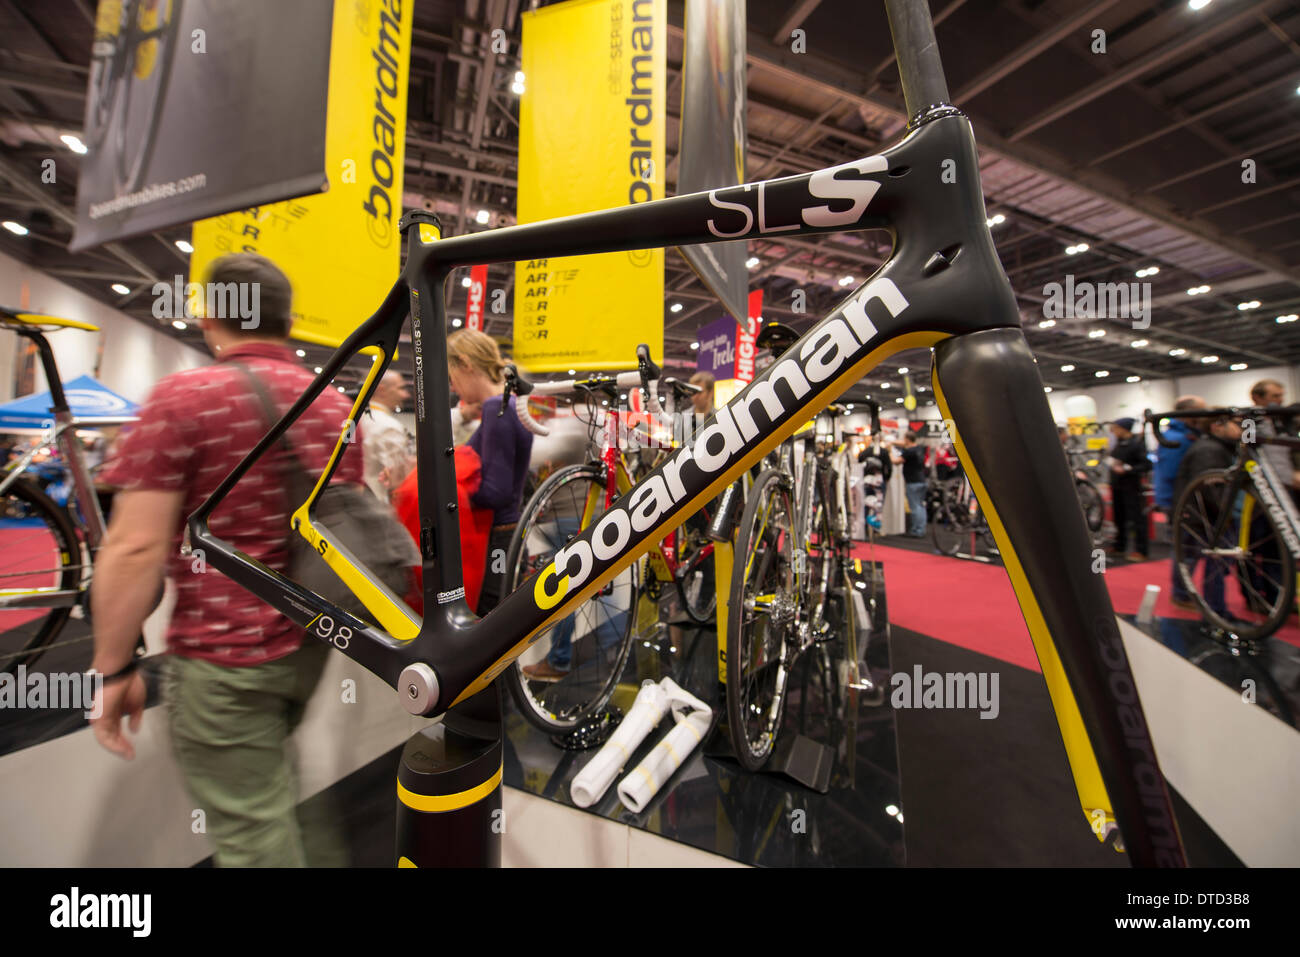 London, UK. 15th Feb, 2014 The UK's largest cycling exhibition showcases many new bikes and accessories. Boardman bikes stand with a presentation of the AiR/9.8 frame, an ultralight full carbon monocoque tapered headtube with internal cable routing. Credit:  Malcolm Park editorial/Alamy Live News - Stock Image